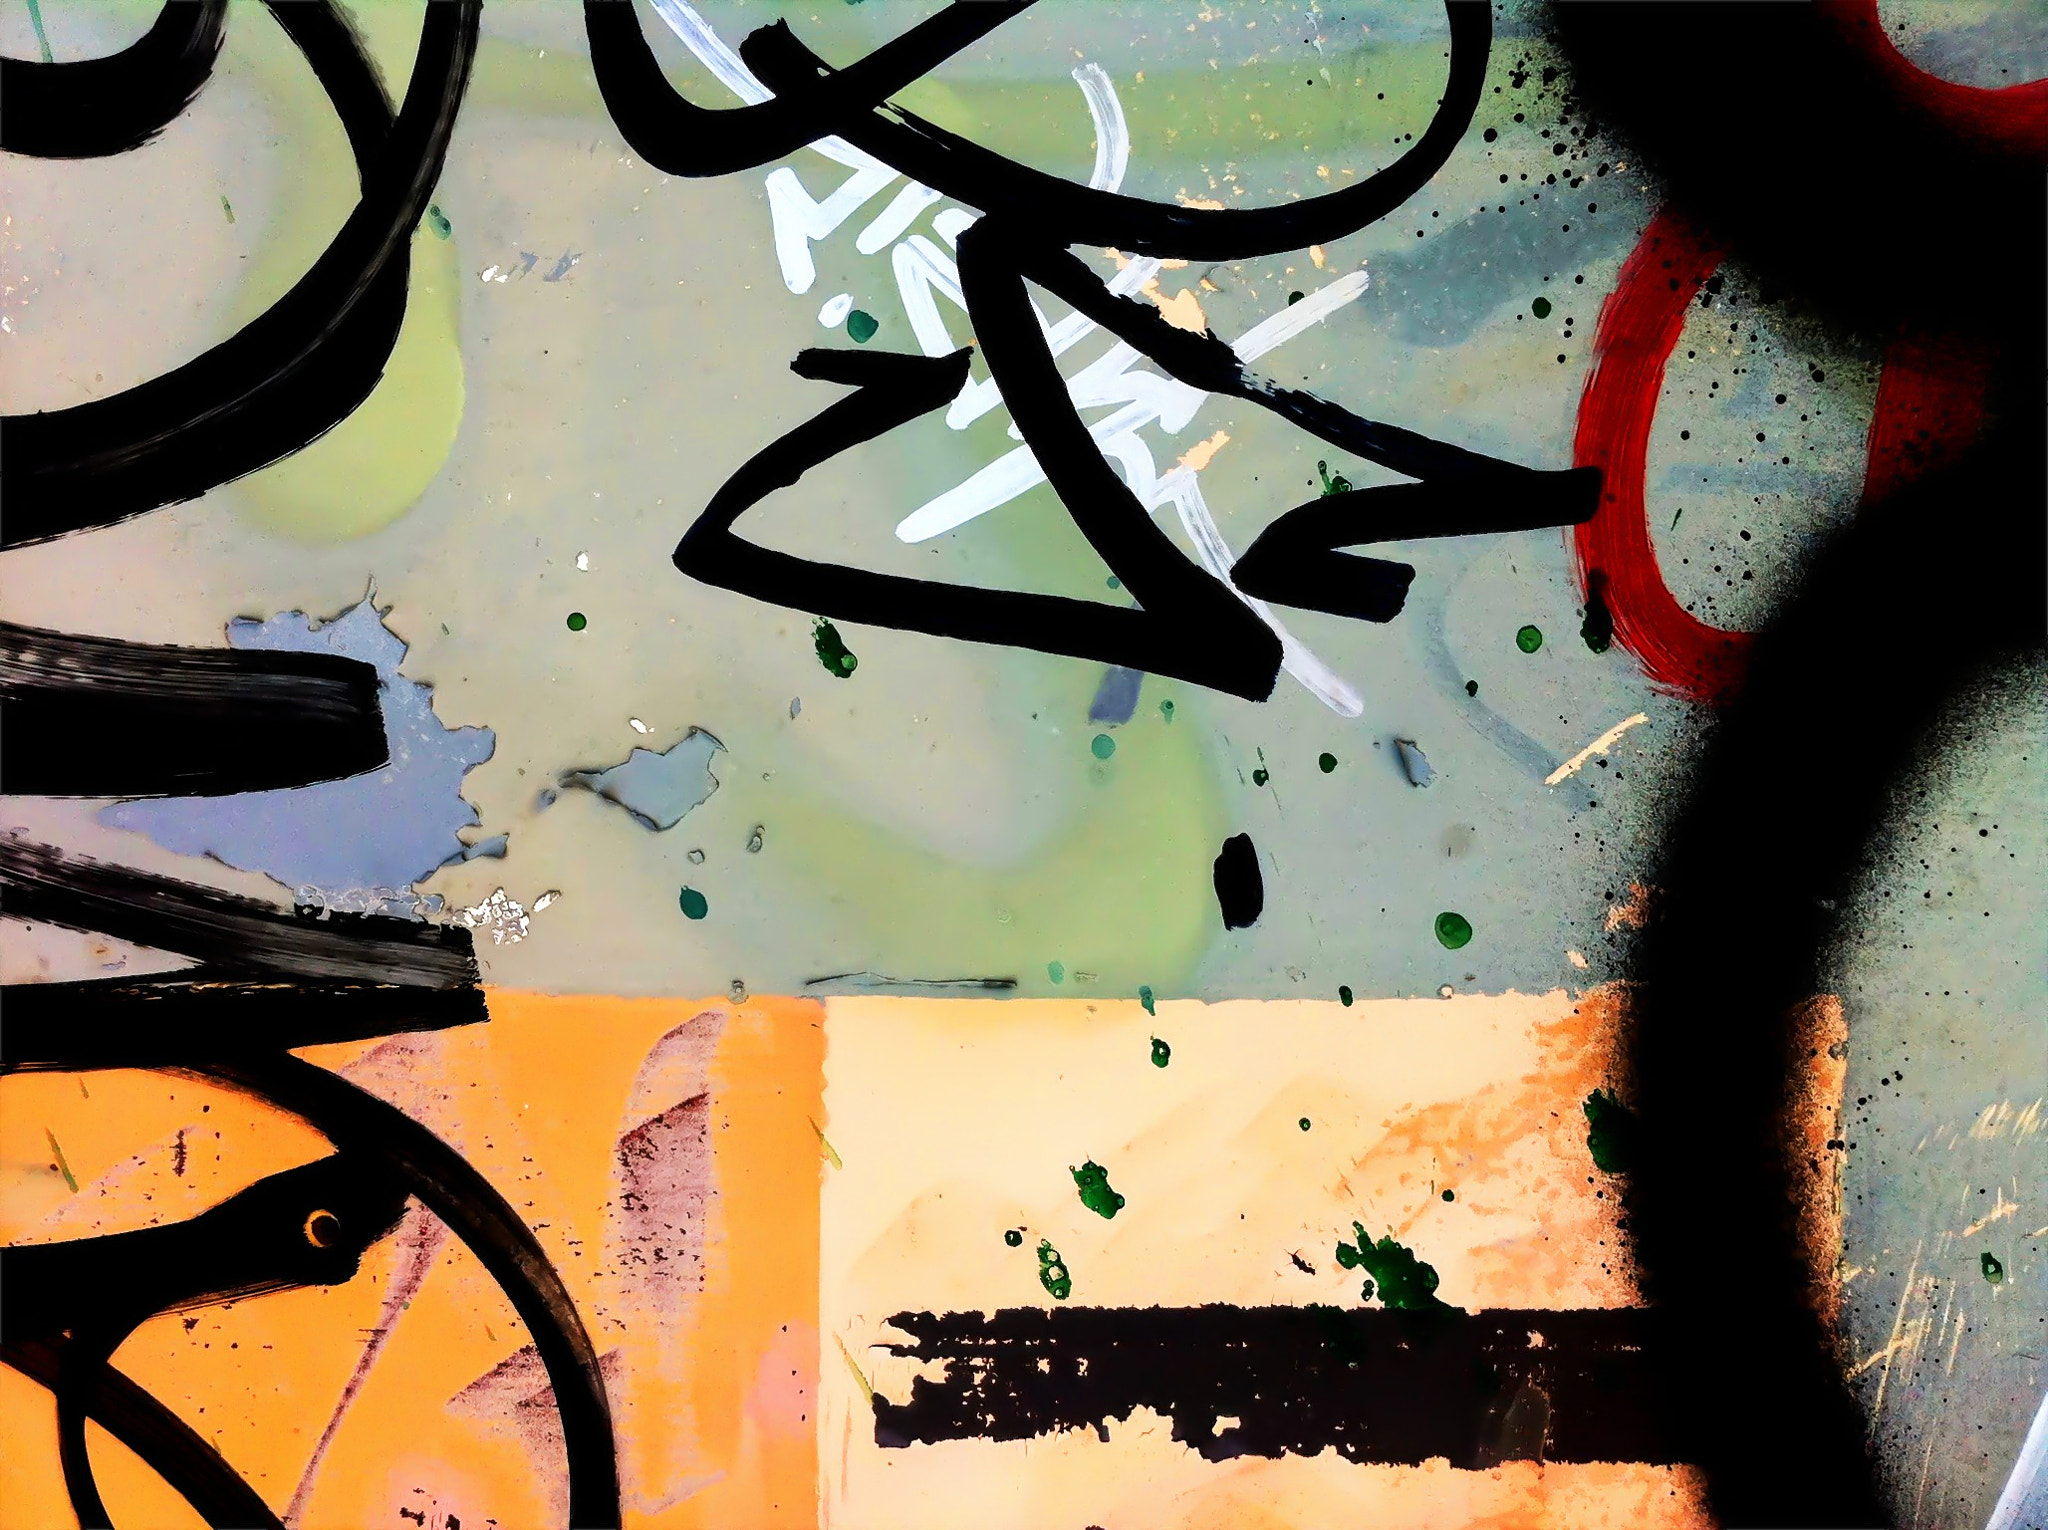 Photograph Graffiti abstraction by Erik Beck on 500px